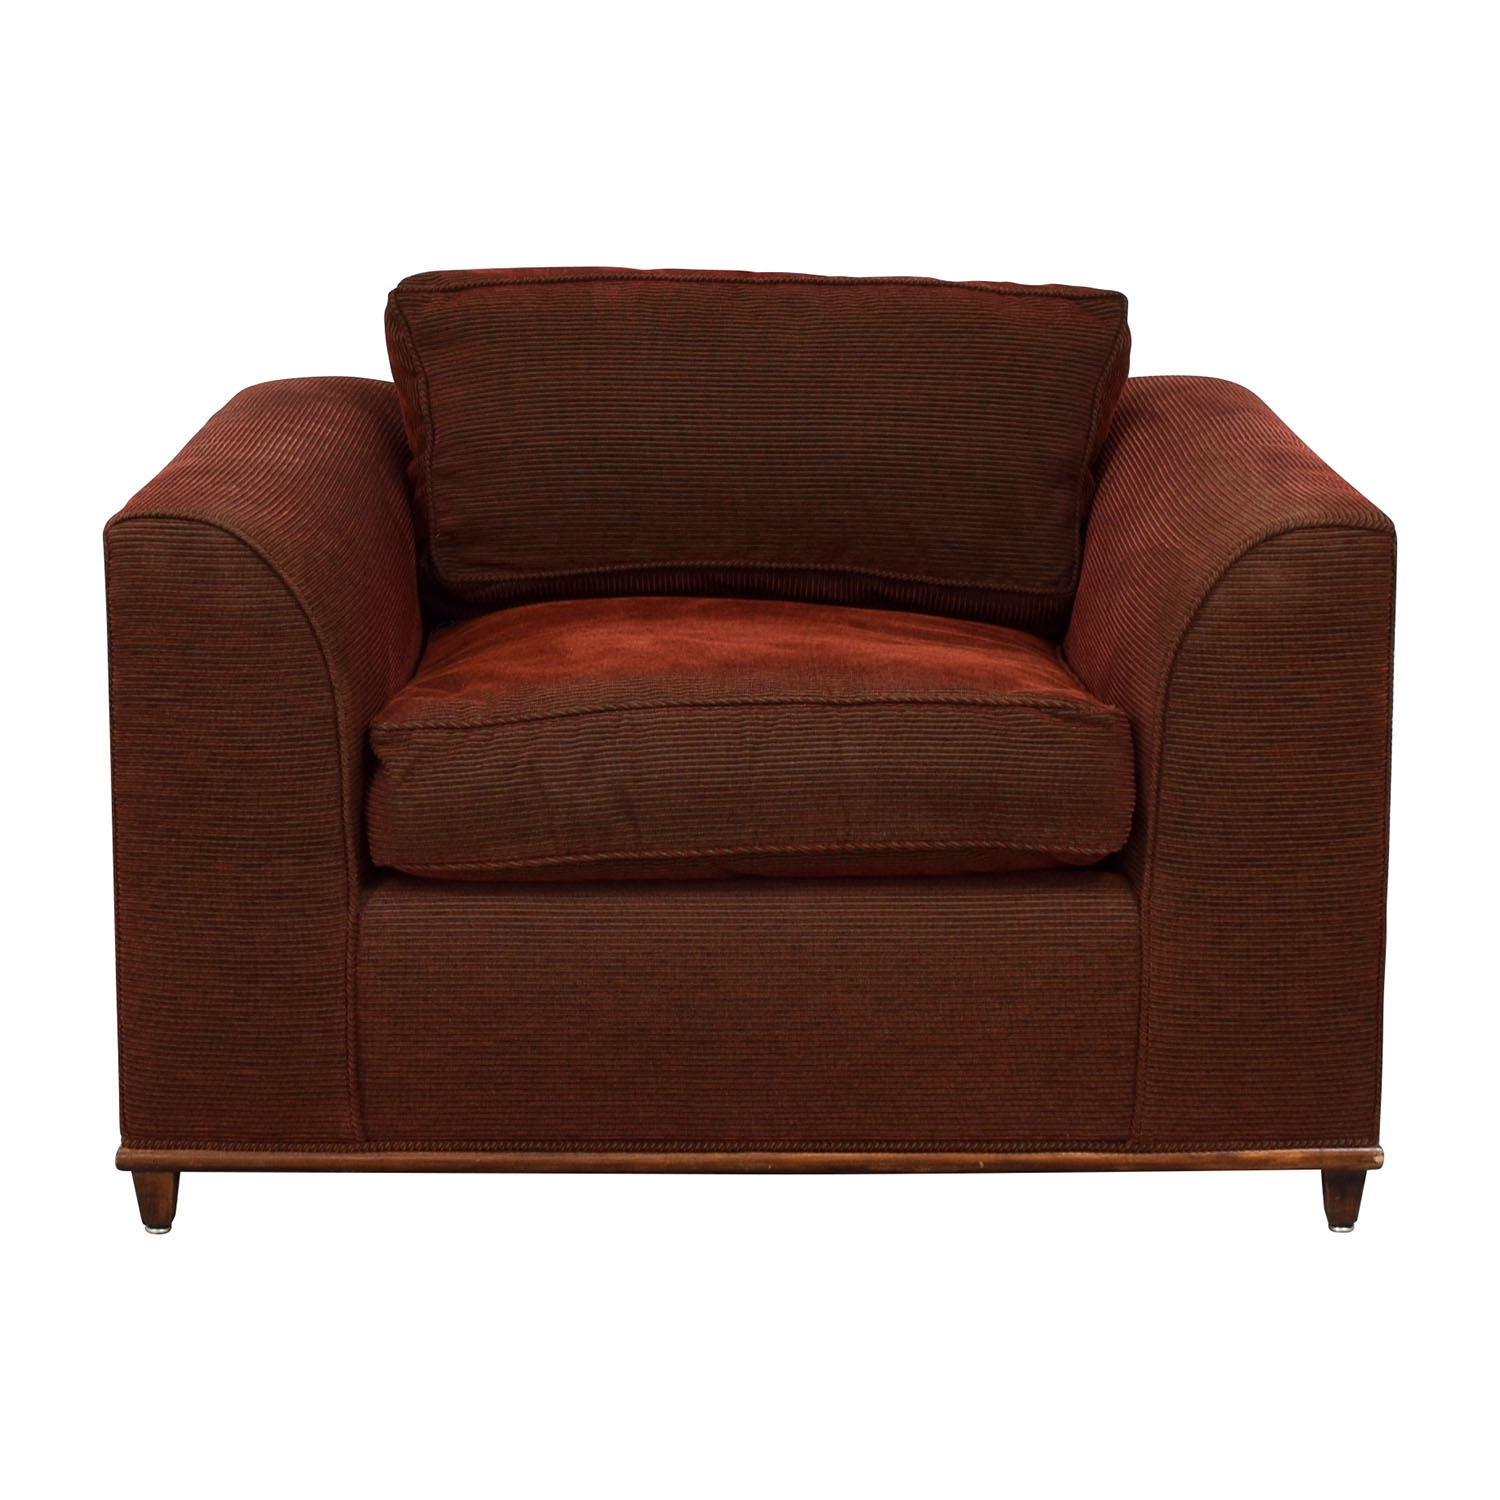 Overstuffed Red Chair coupon